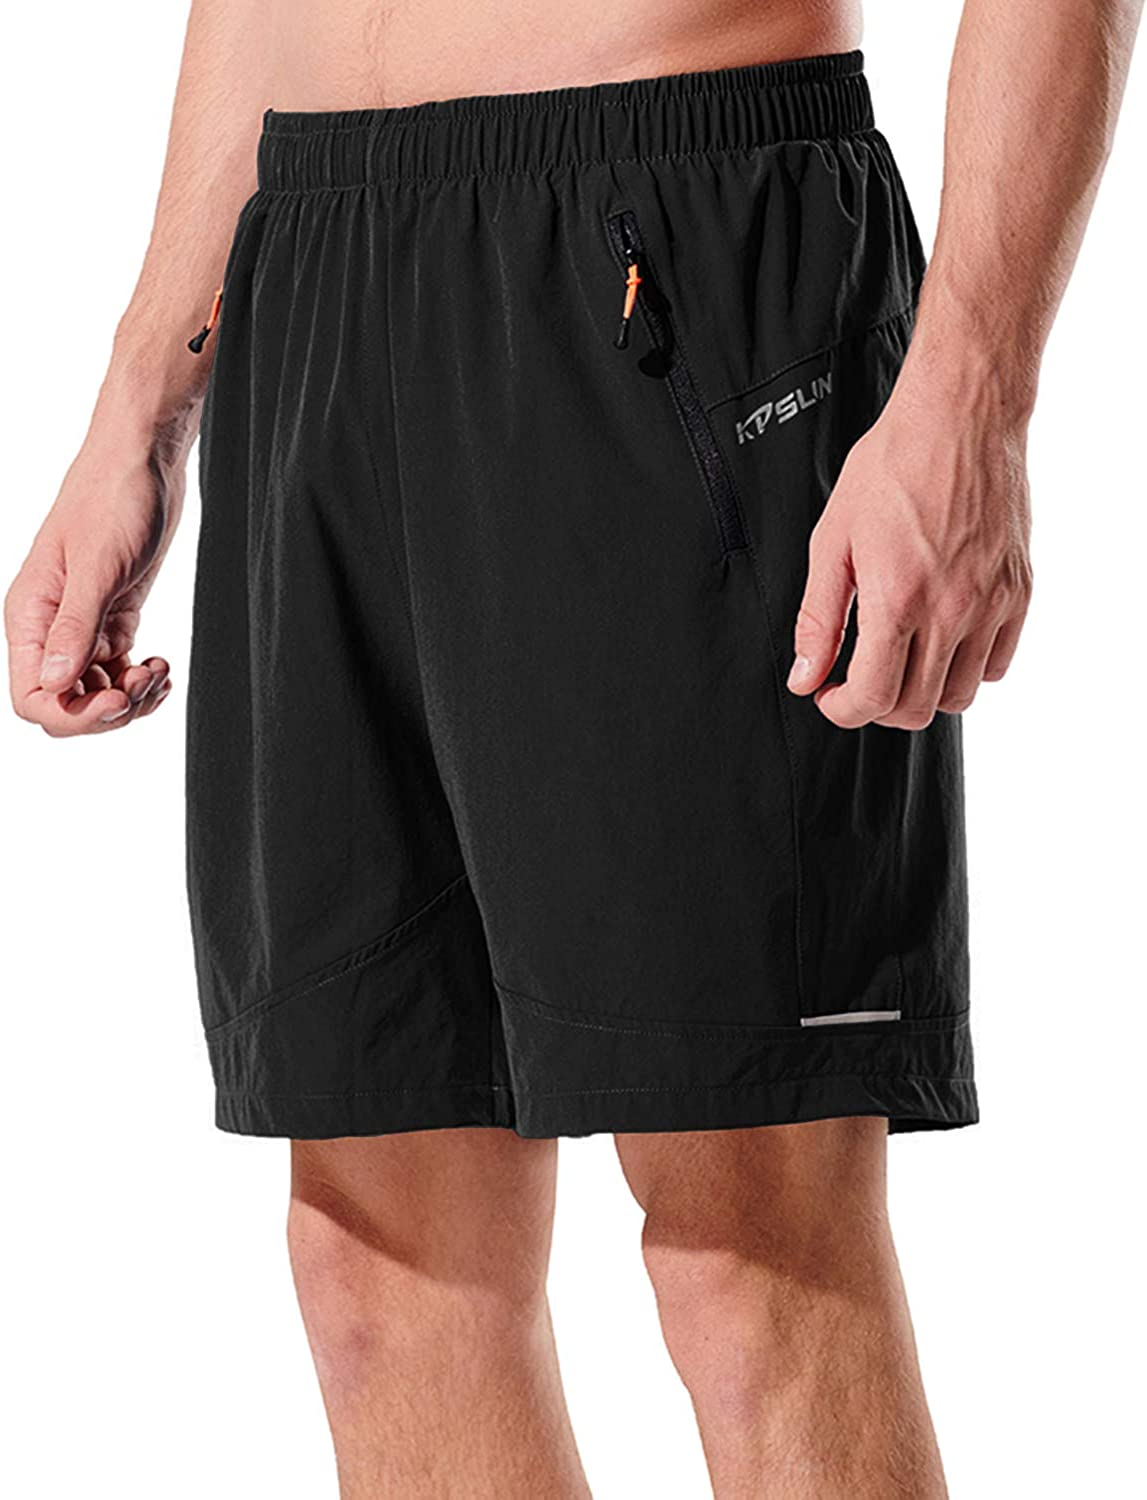 KPSUN Mens 7 Inch Running Shorts Lightweight Quick Dry Athletic Shorts for Workout Gym Training with Zipper Pockets